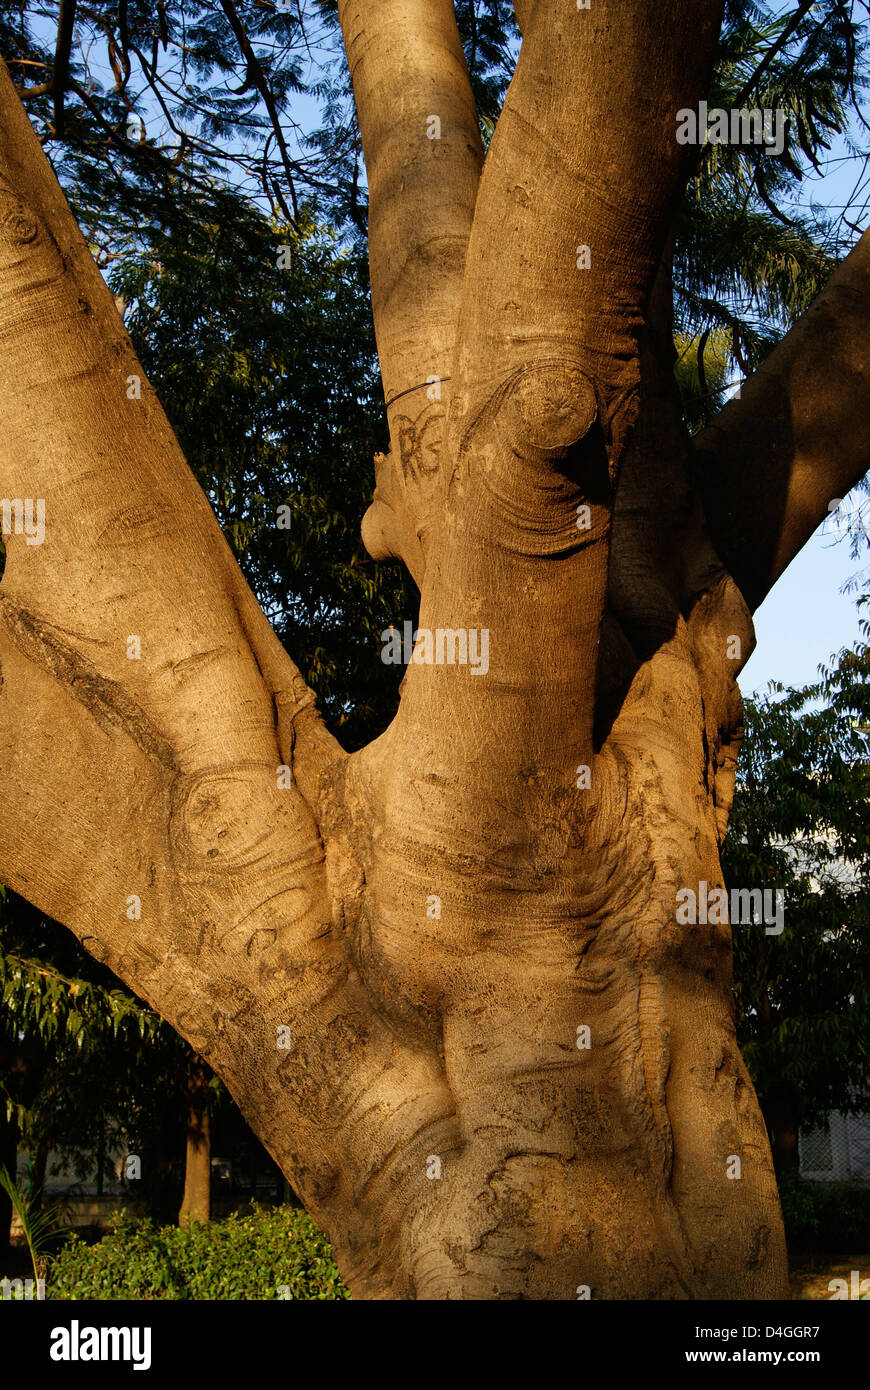 Huge Tree Trunk and Branches View at Swamy Vivekananda Park at Bangalore India - Stock Image